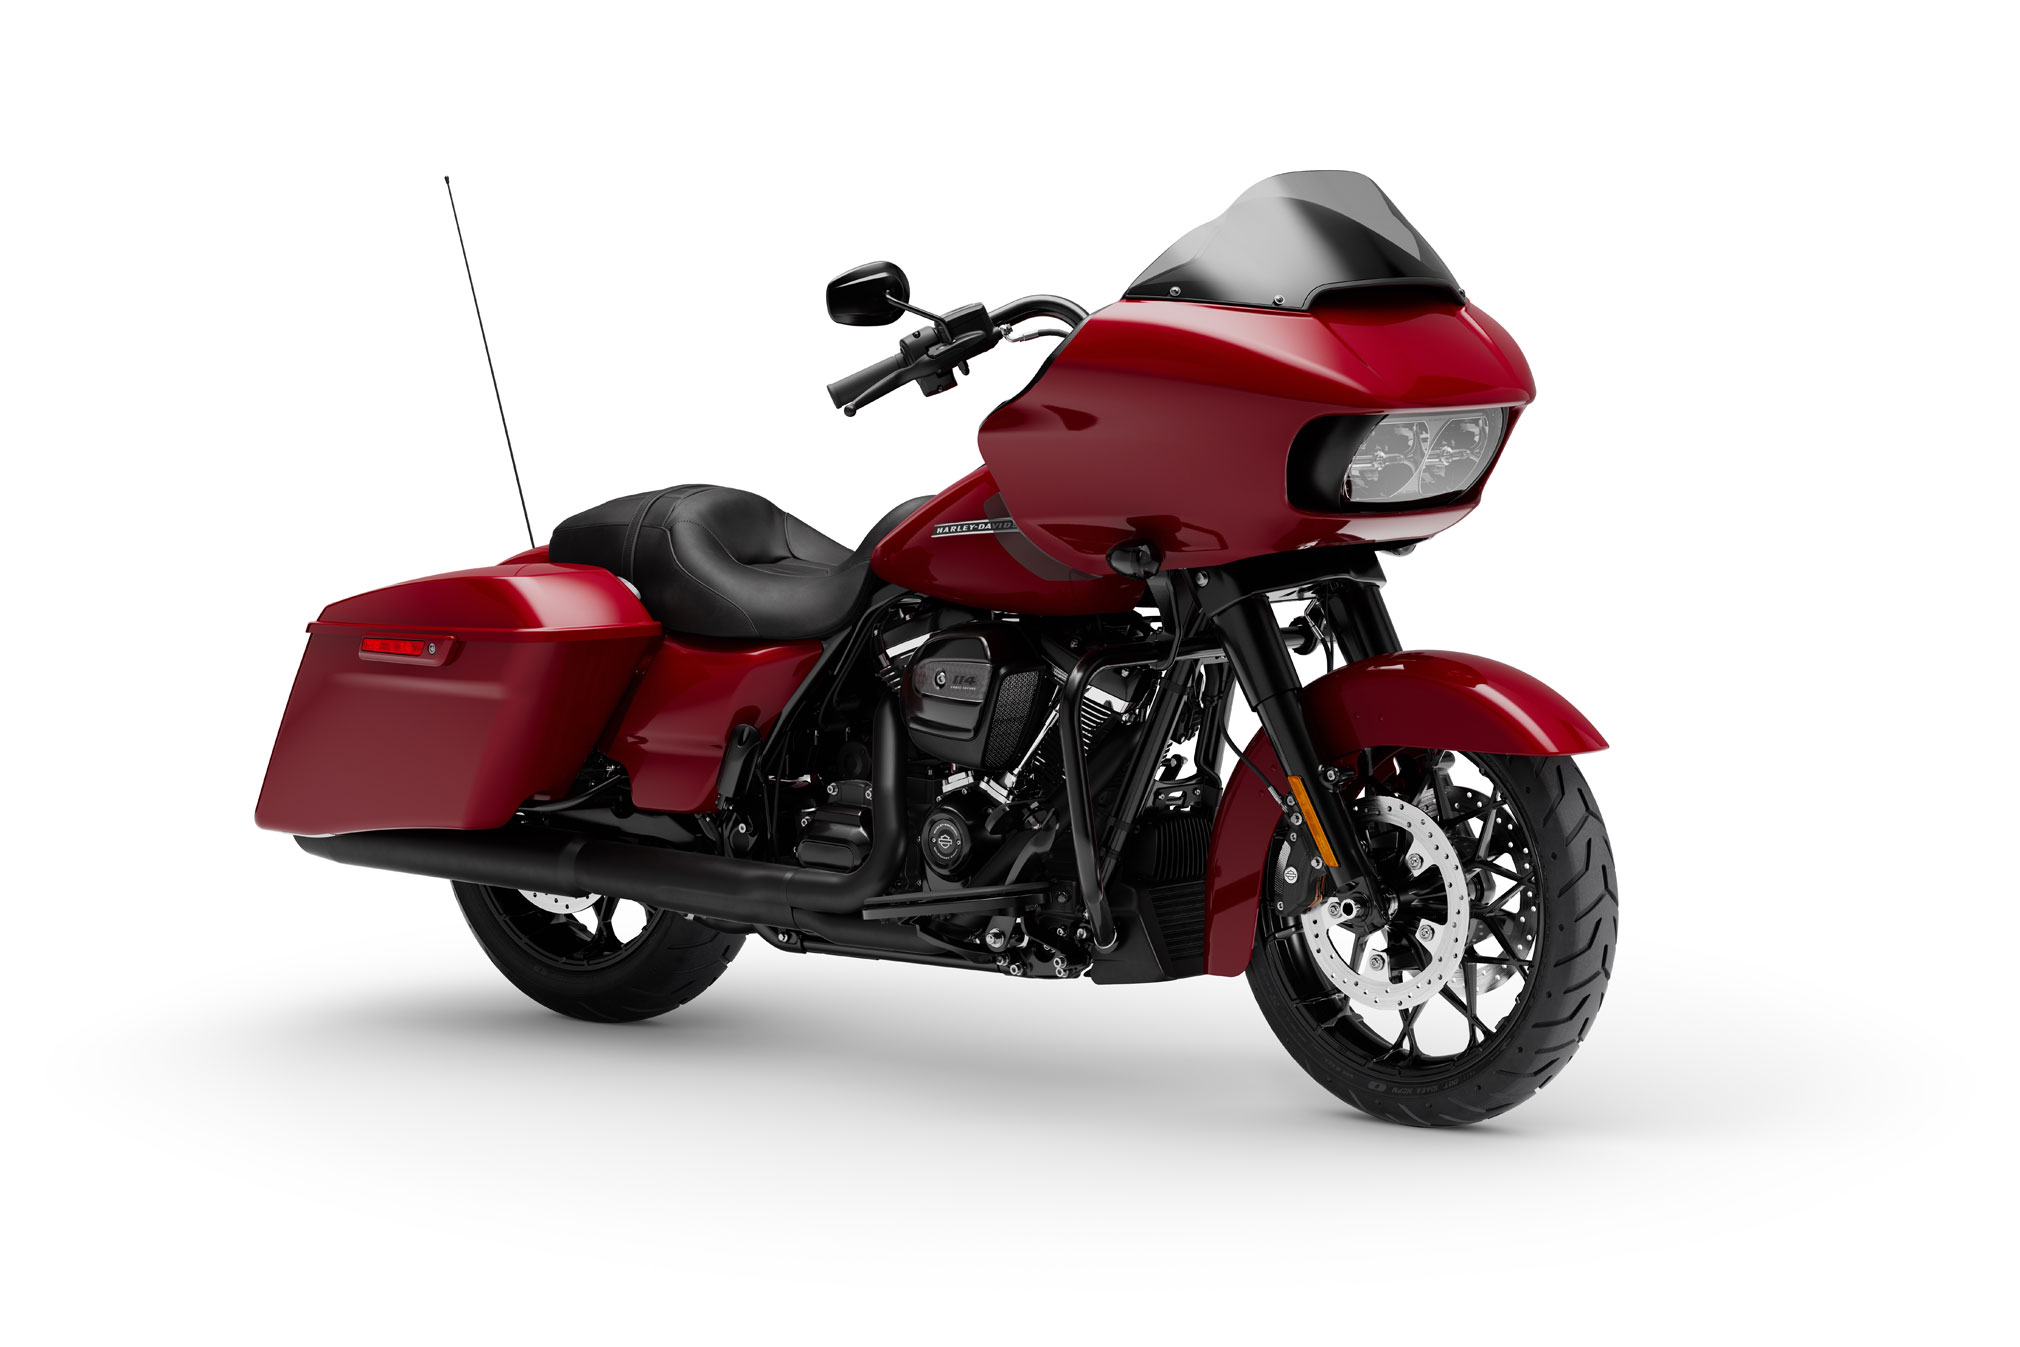 2020 Harley Davidson Road Glide Special Guide Total Motorcycle